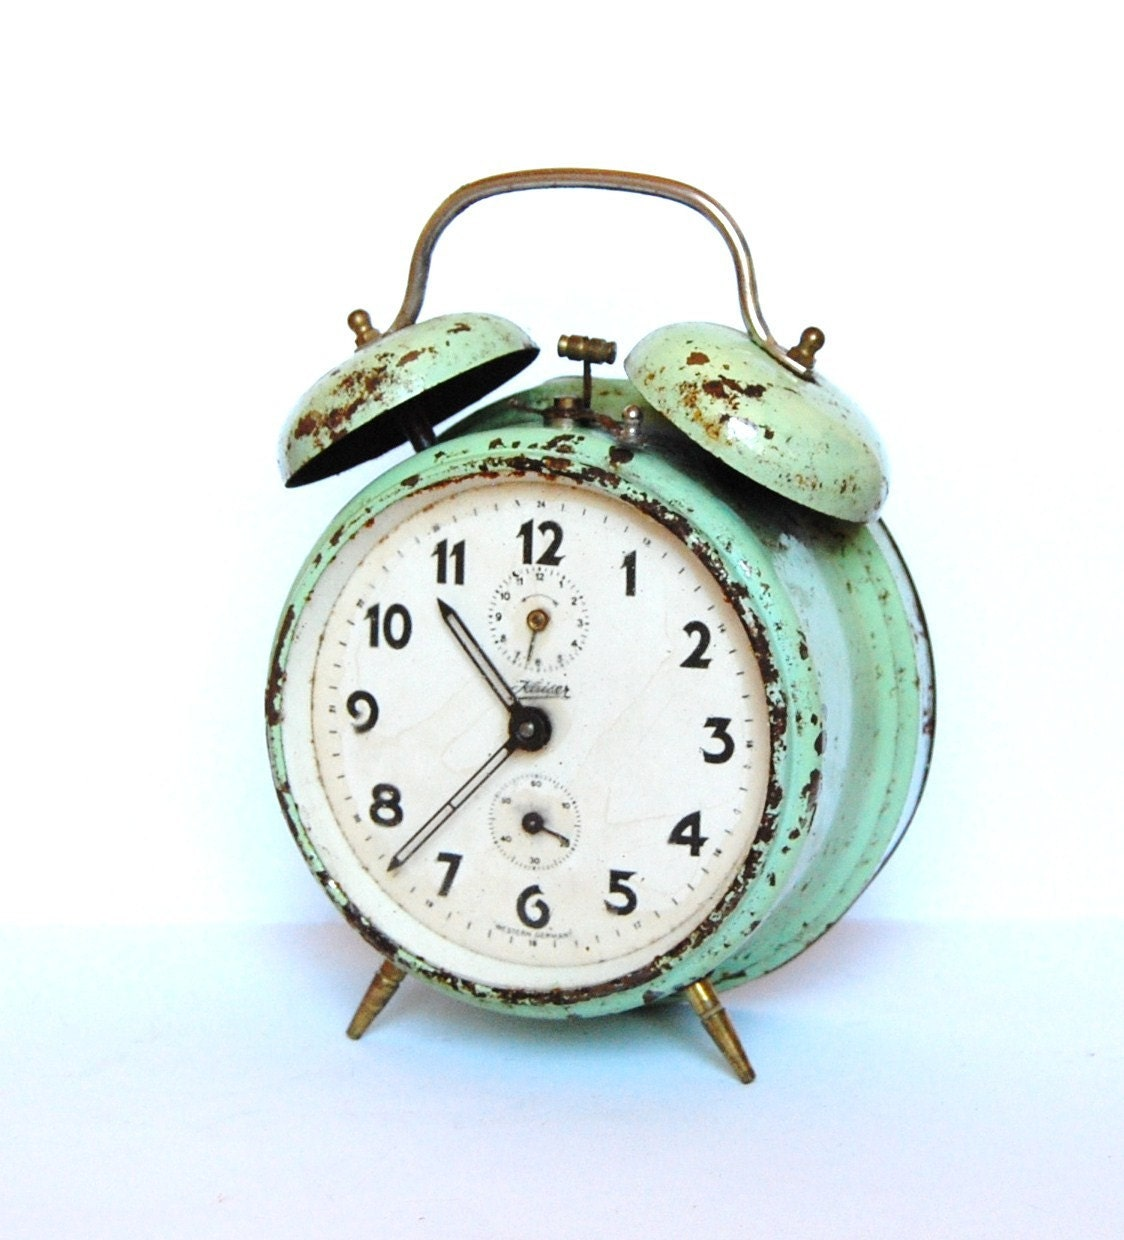 vintage rusty alarm clock from germany in teal color not. Black Bedroom Furniture Sets. Home Design Ideas